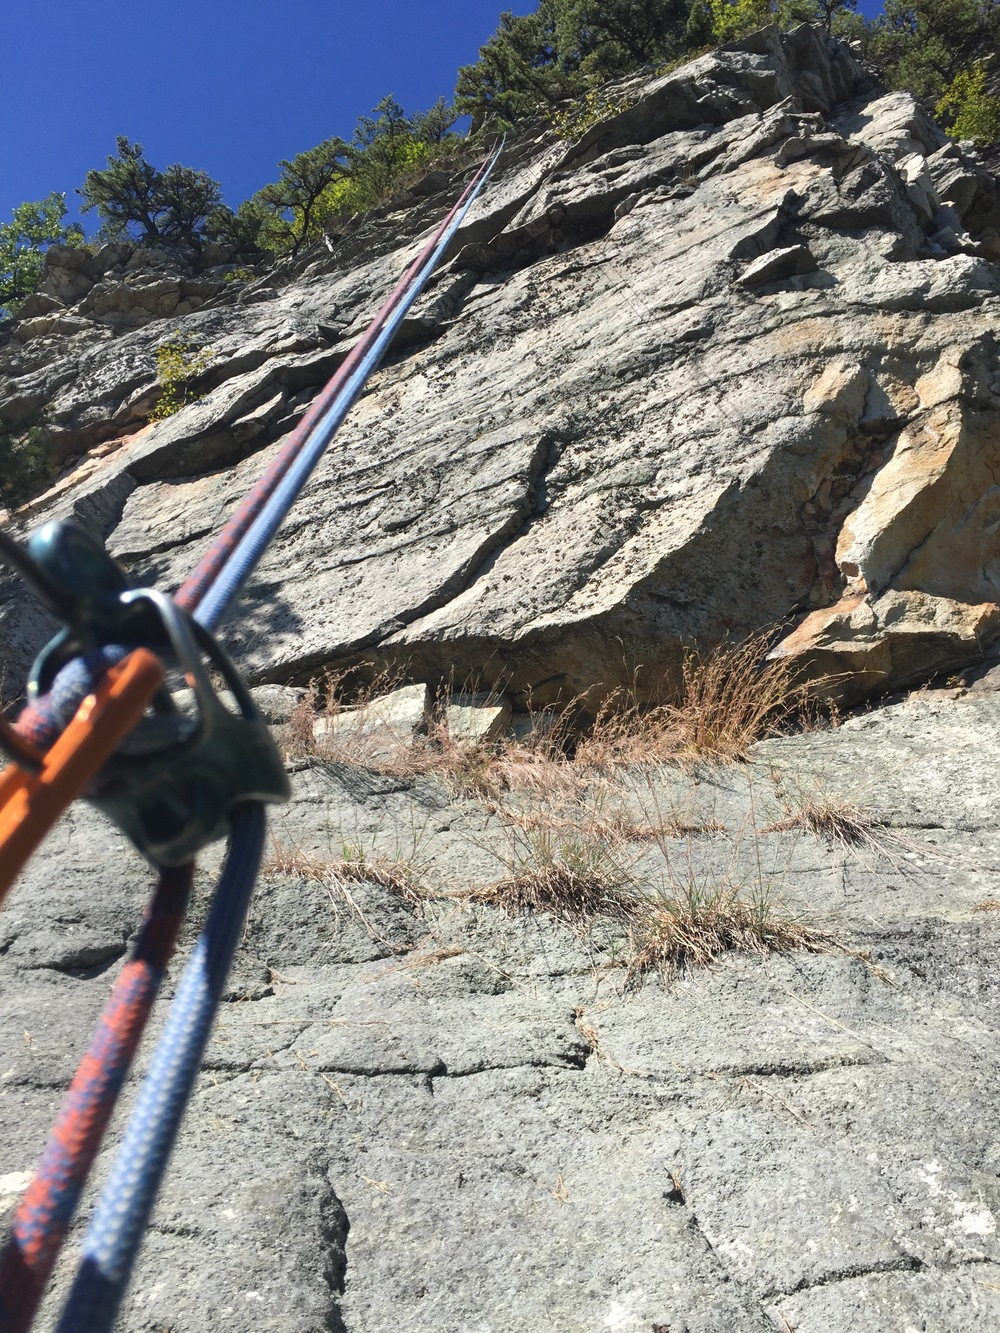 The tallest cliffs at the Gunks are right around 70m, which makes for some really great double rope raps!